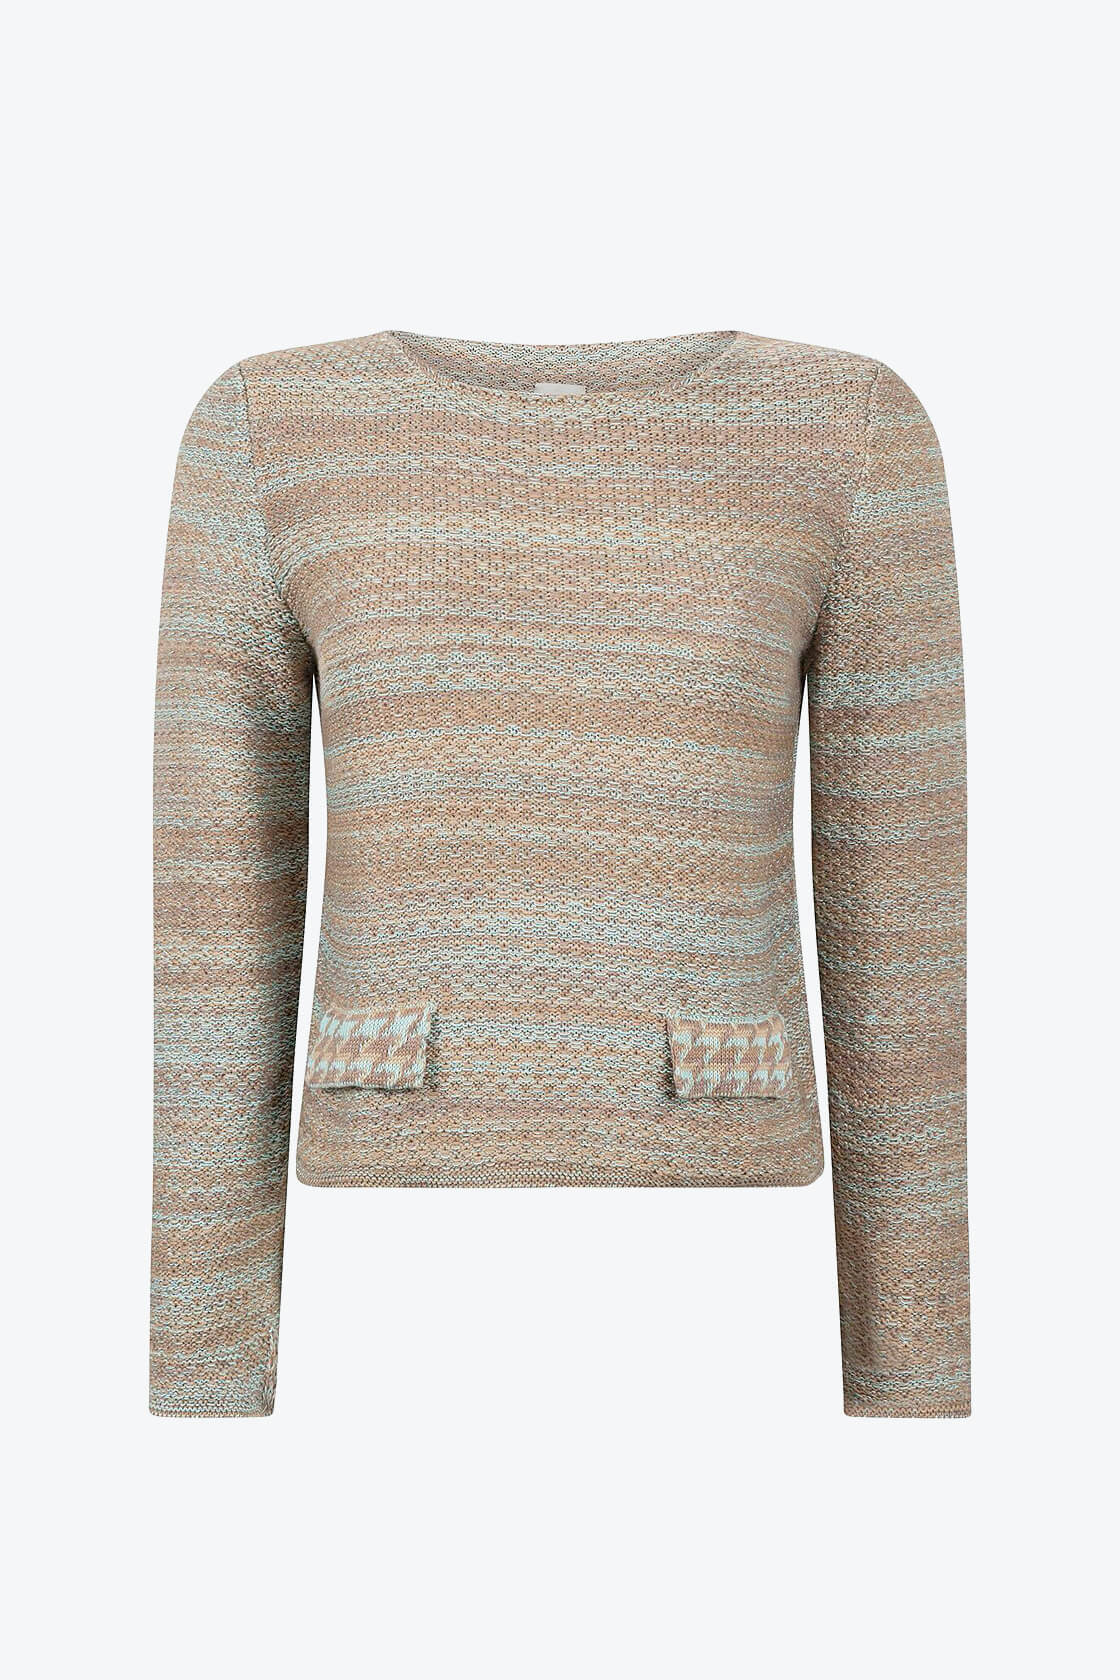 Elegant Knitted Jumper In Audrey Hepburn Style Tweed Fair